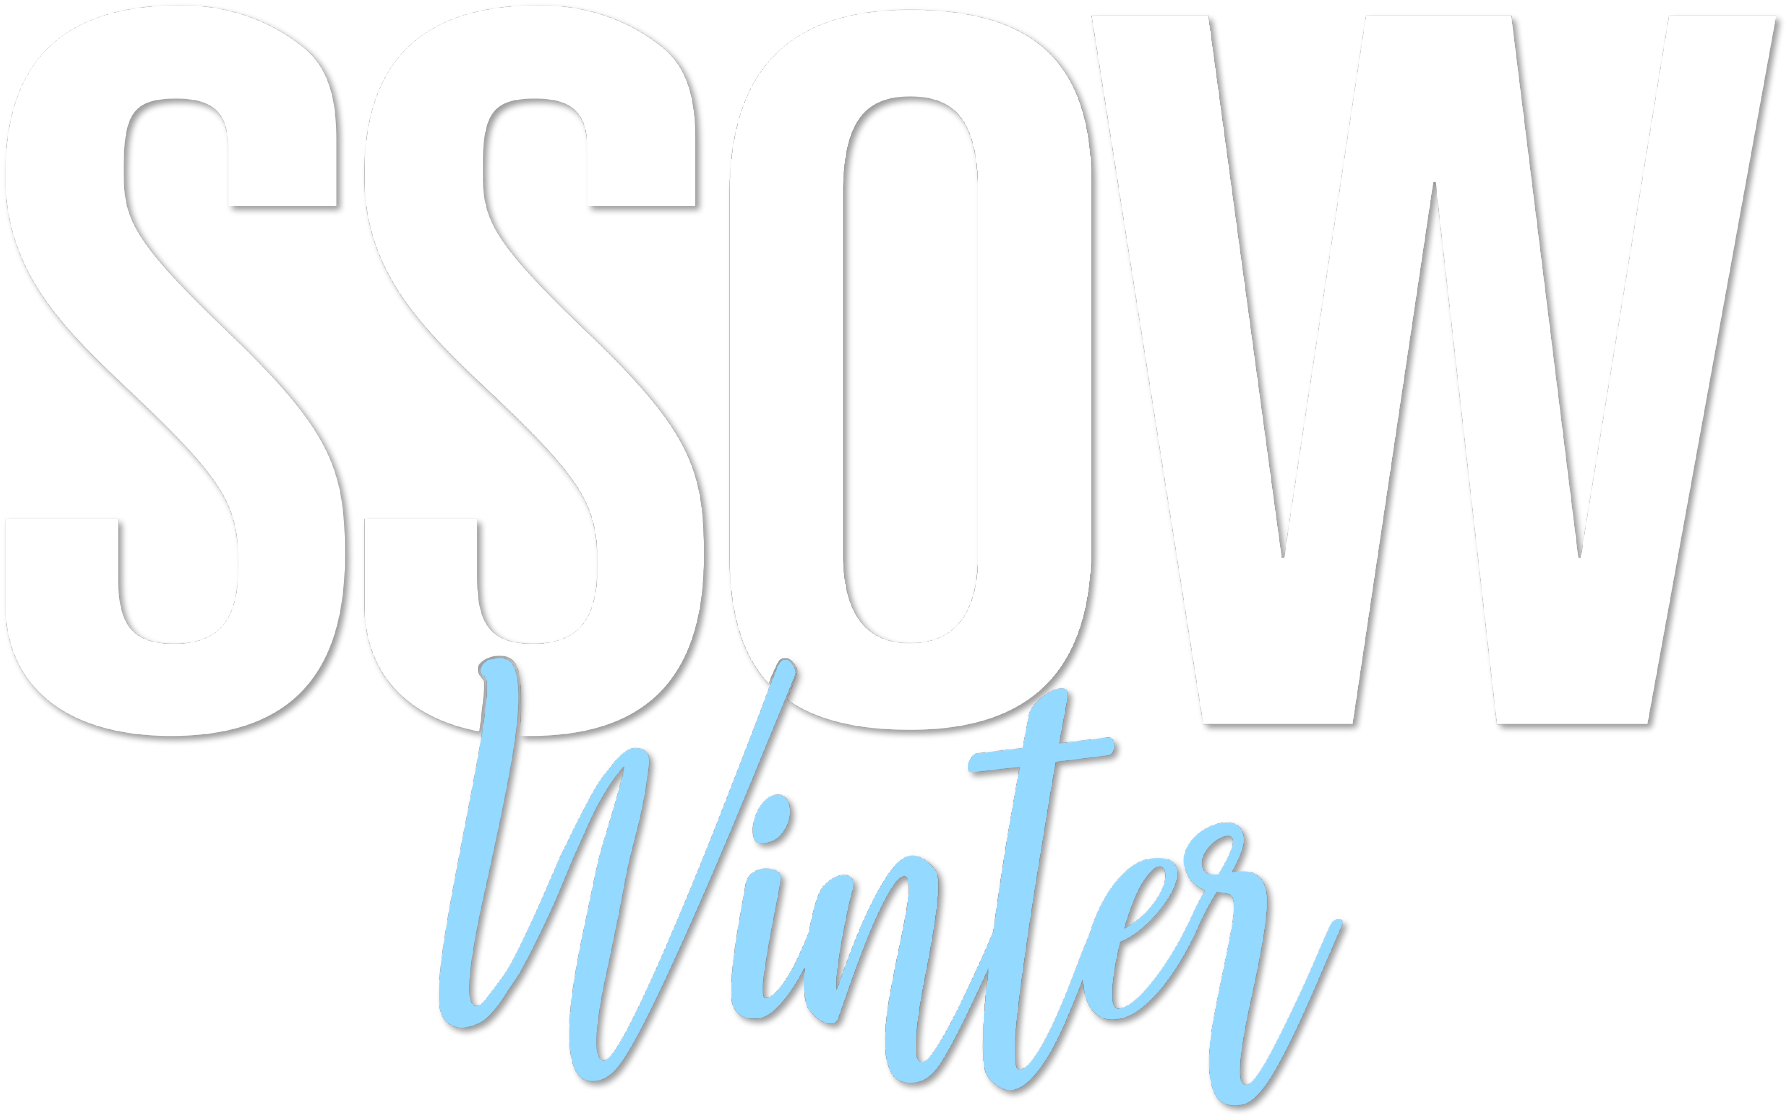 SSOW Winter - Shared Services and Outsourcing Week Europe